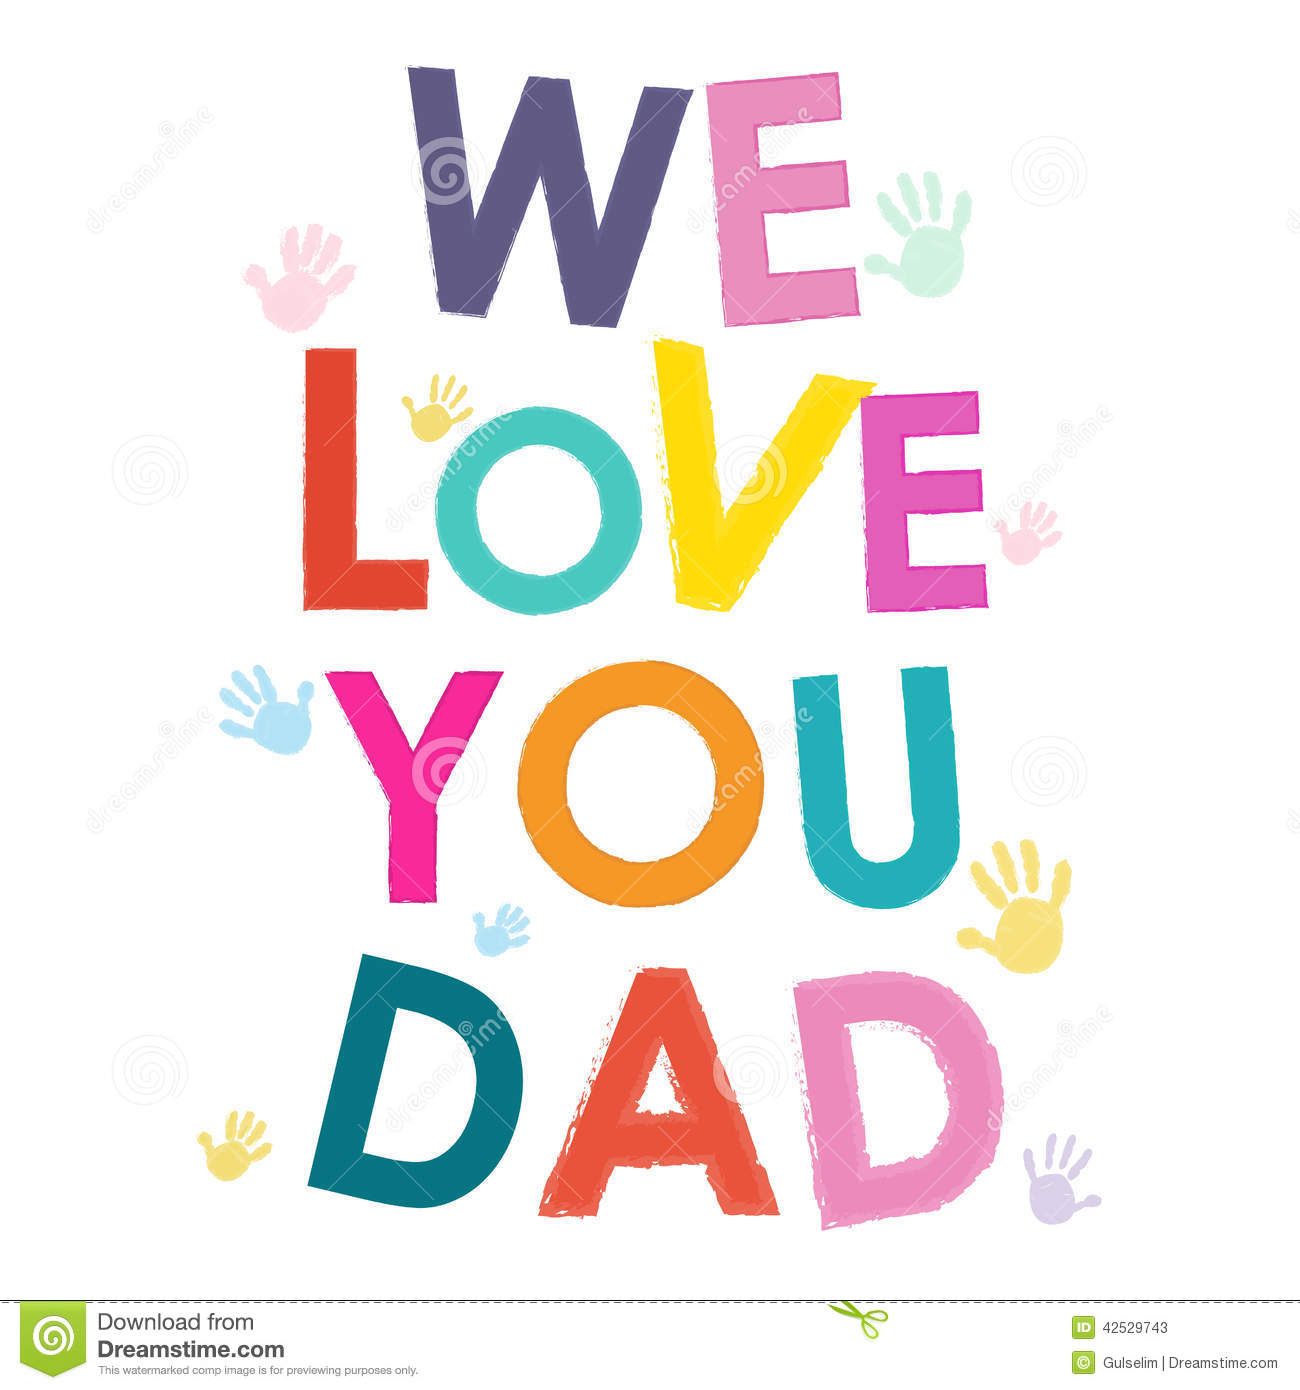 We Love You Dad Happy Fathers Day Card Stock Vector - Image: 42529743